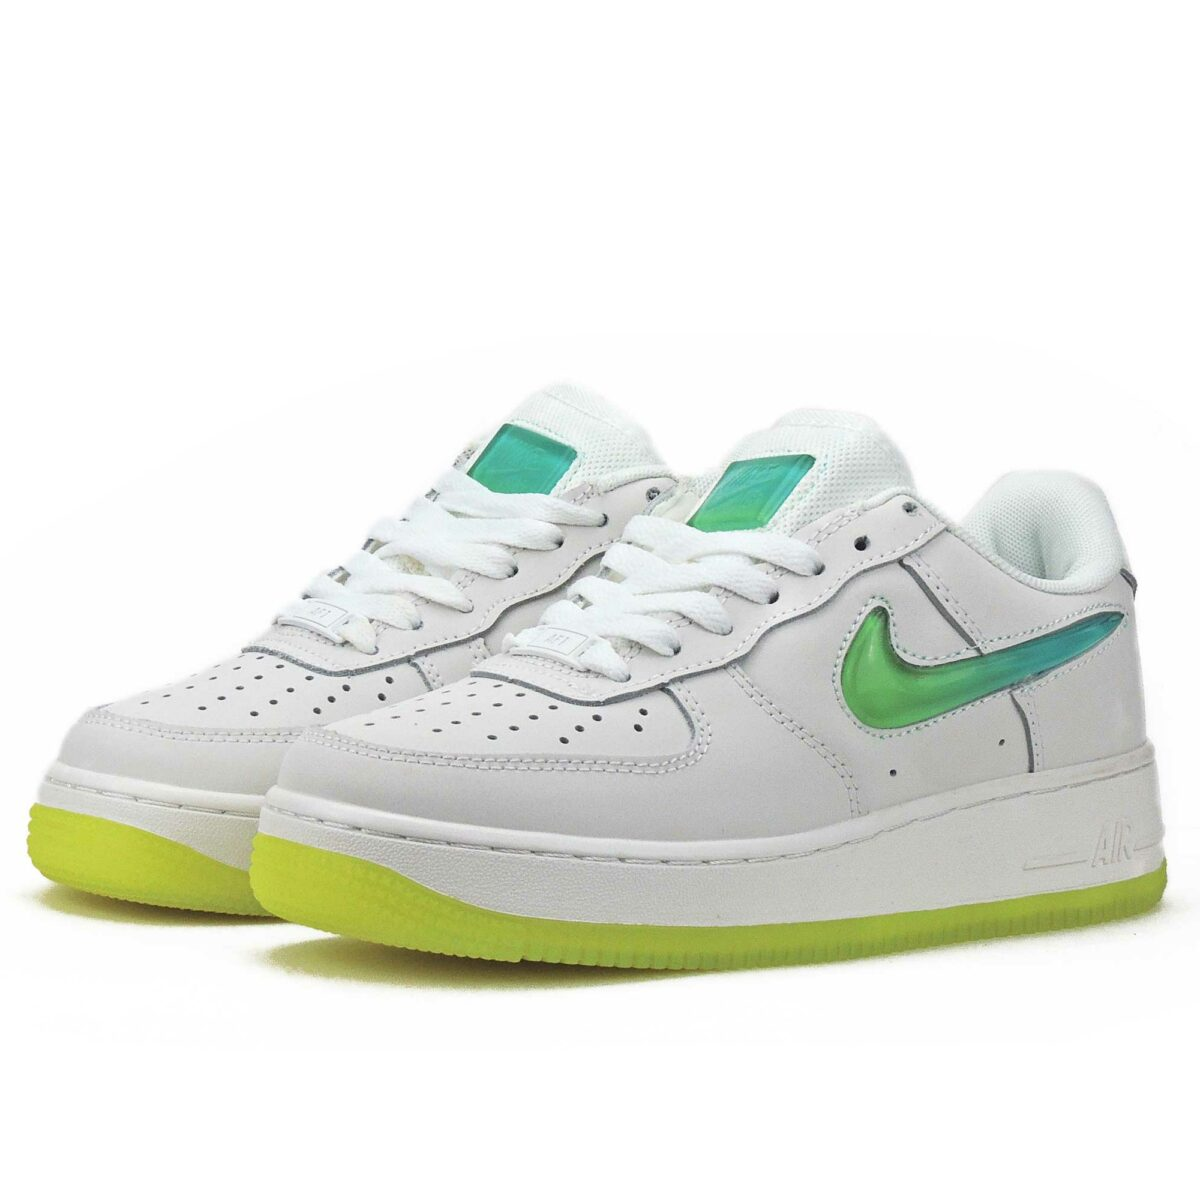 nike air force 1 07 prm AT4143_100 купить